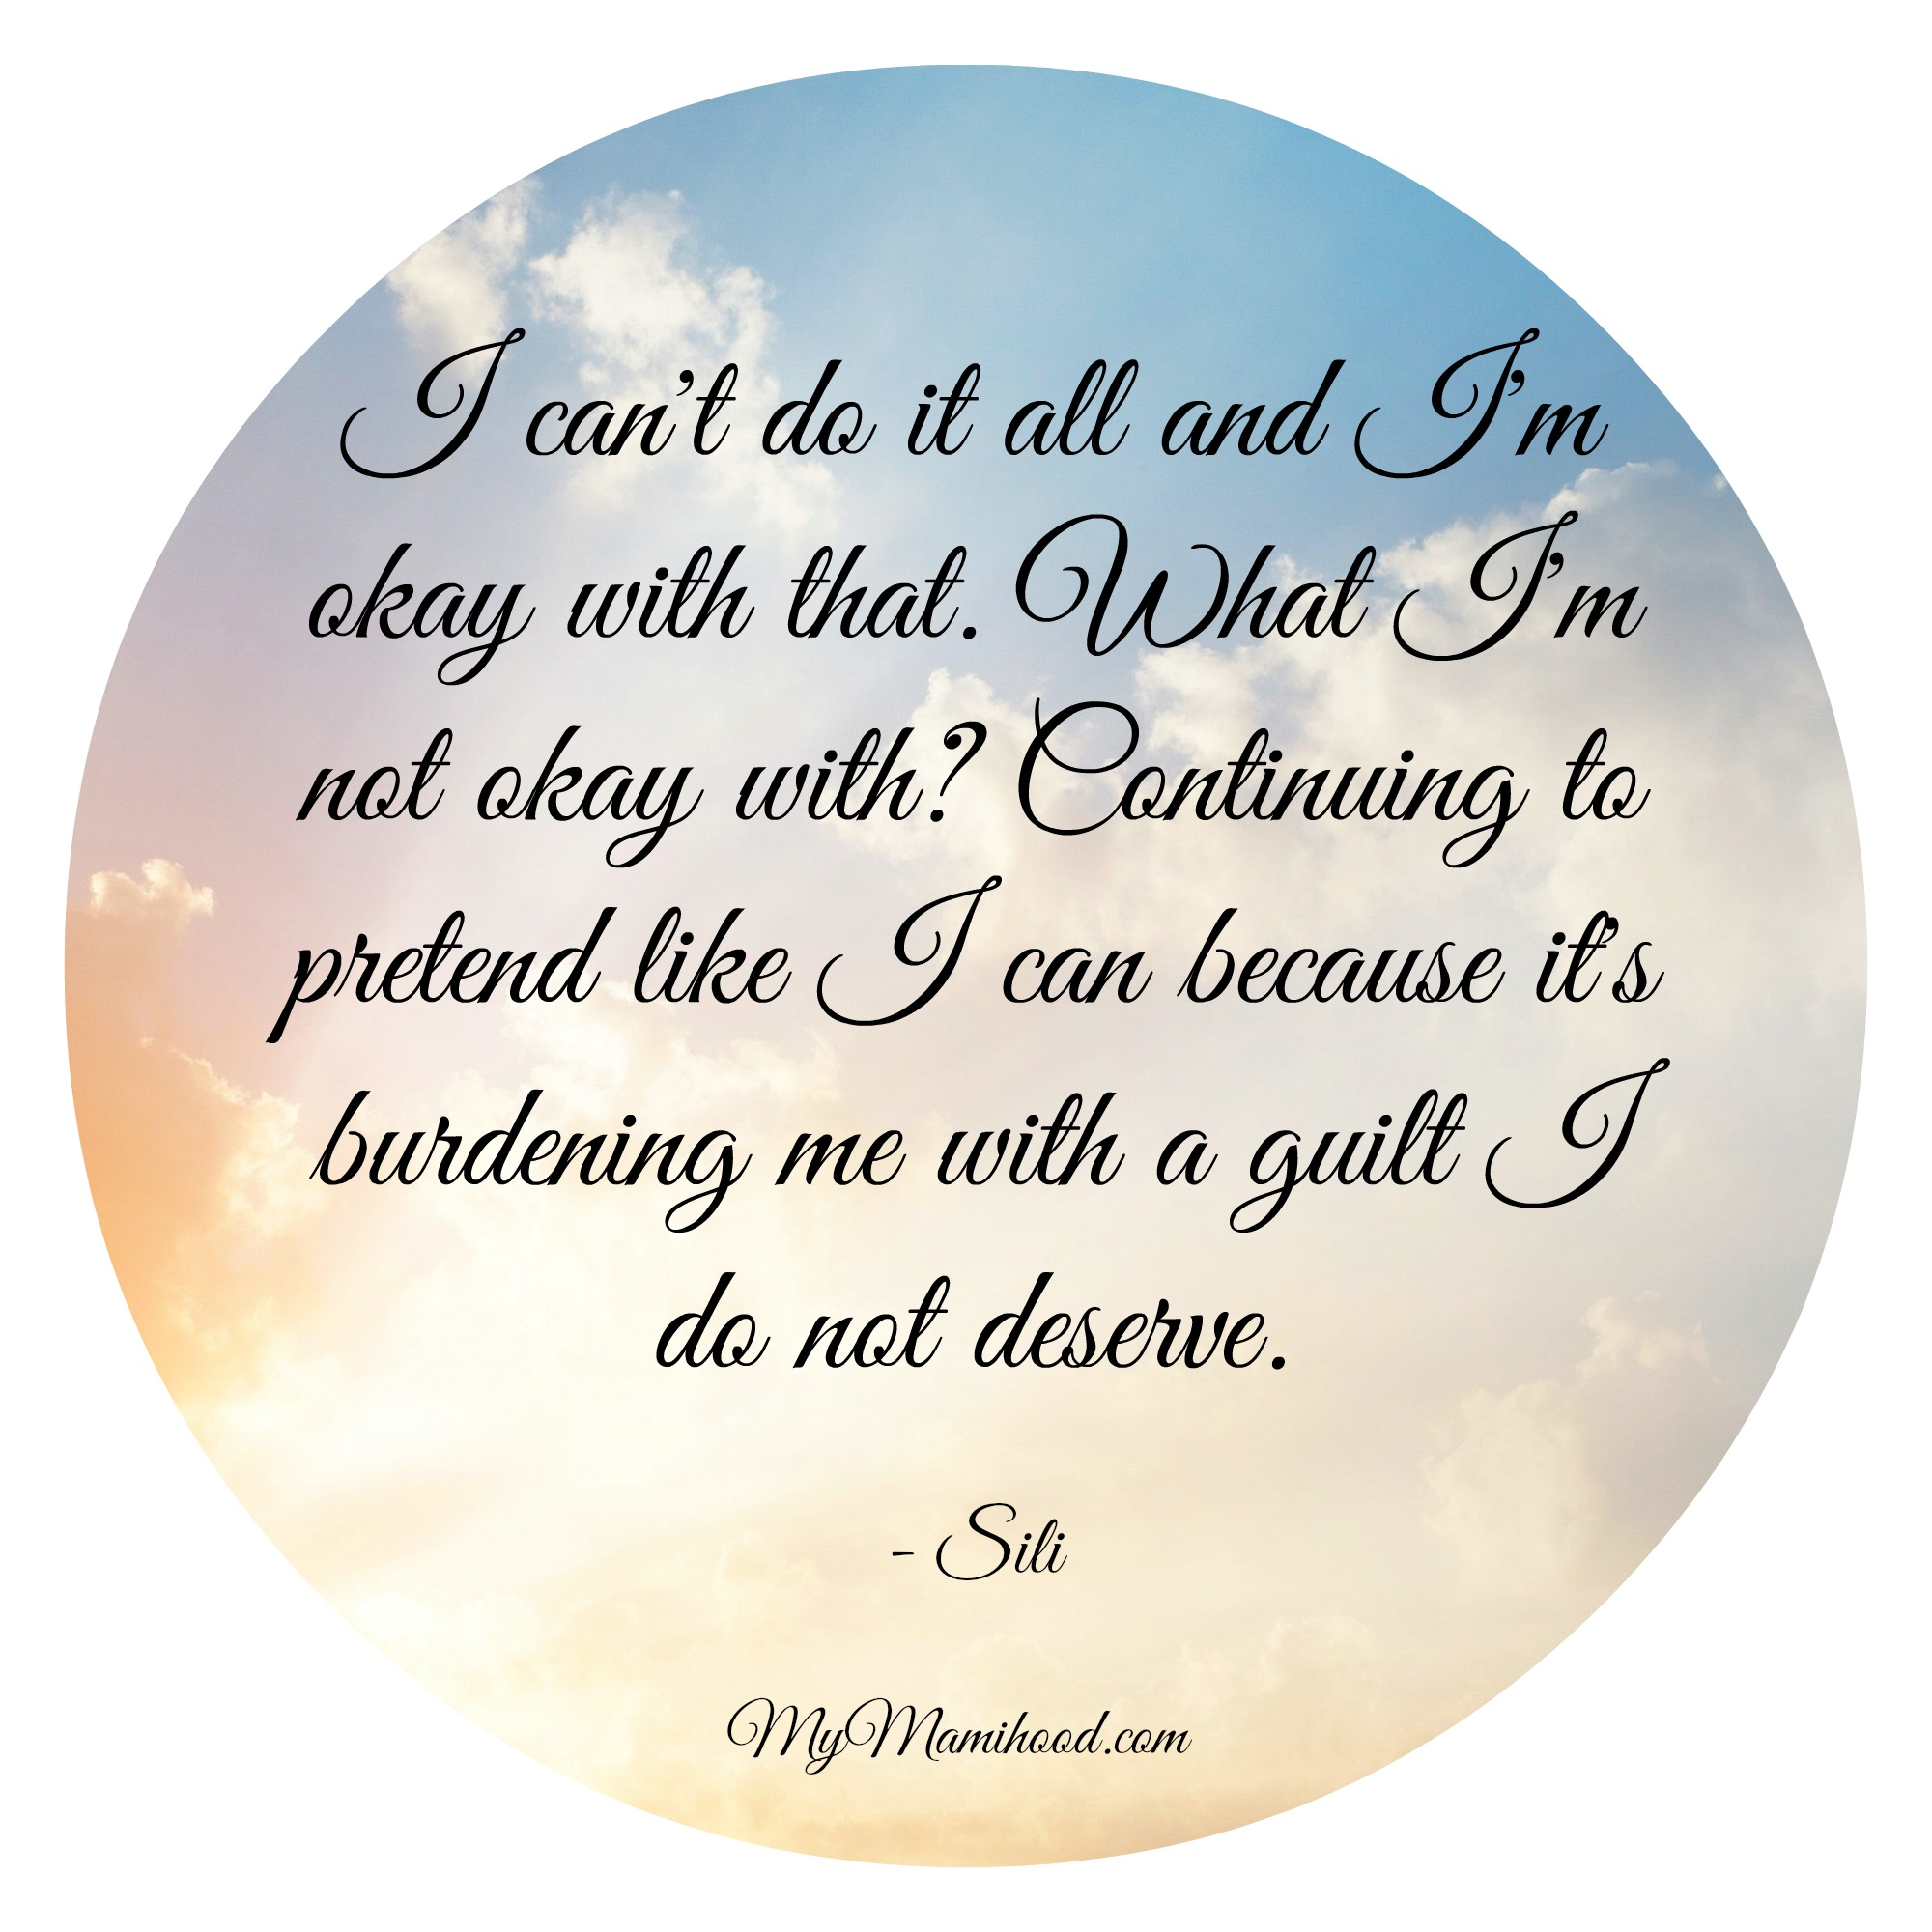 """I can't do it all and I'm okay with that. What I'm not okay with? Continuing to pretend like I can because it's burdening me with a guilt I do not deserve."" - Sili"